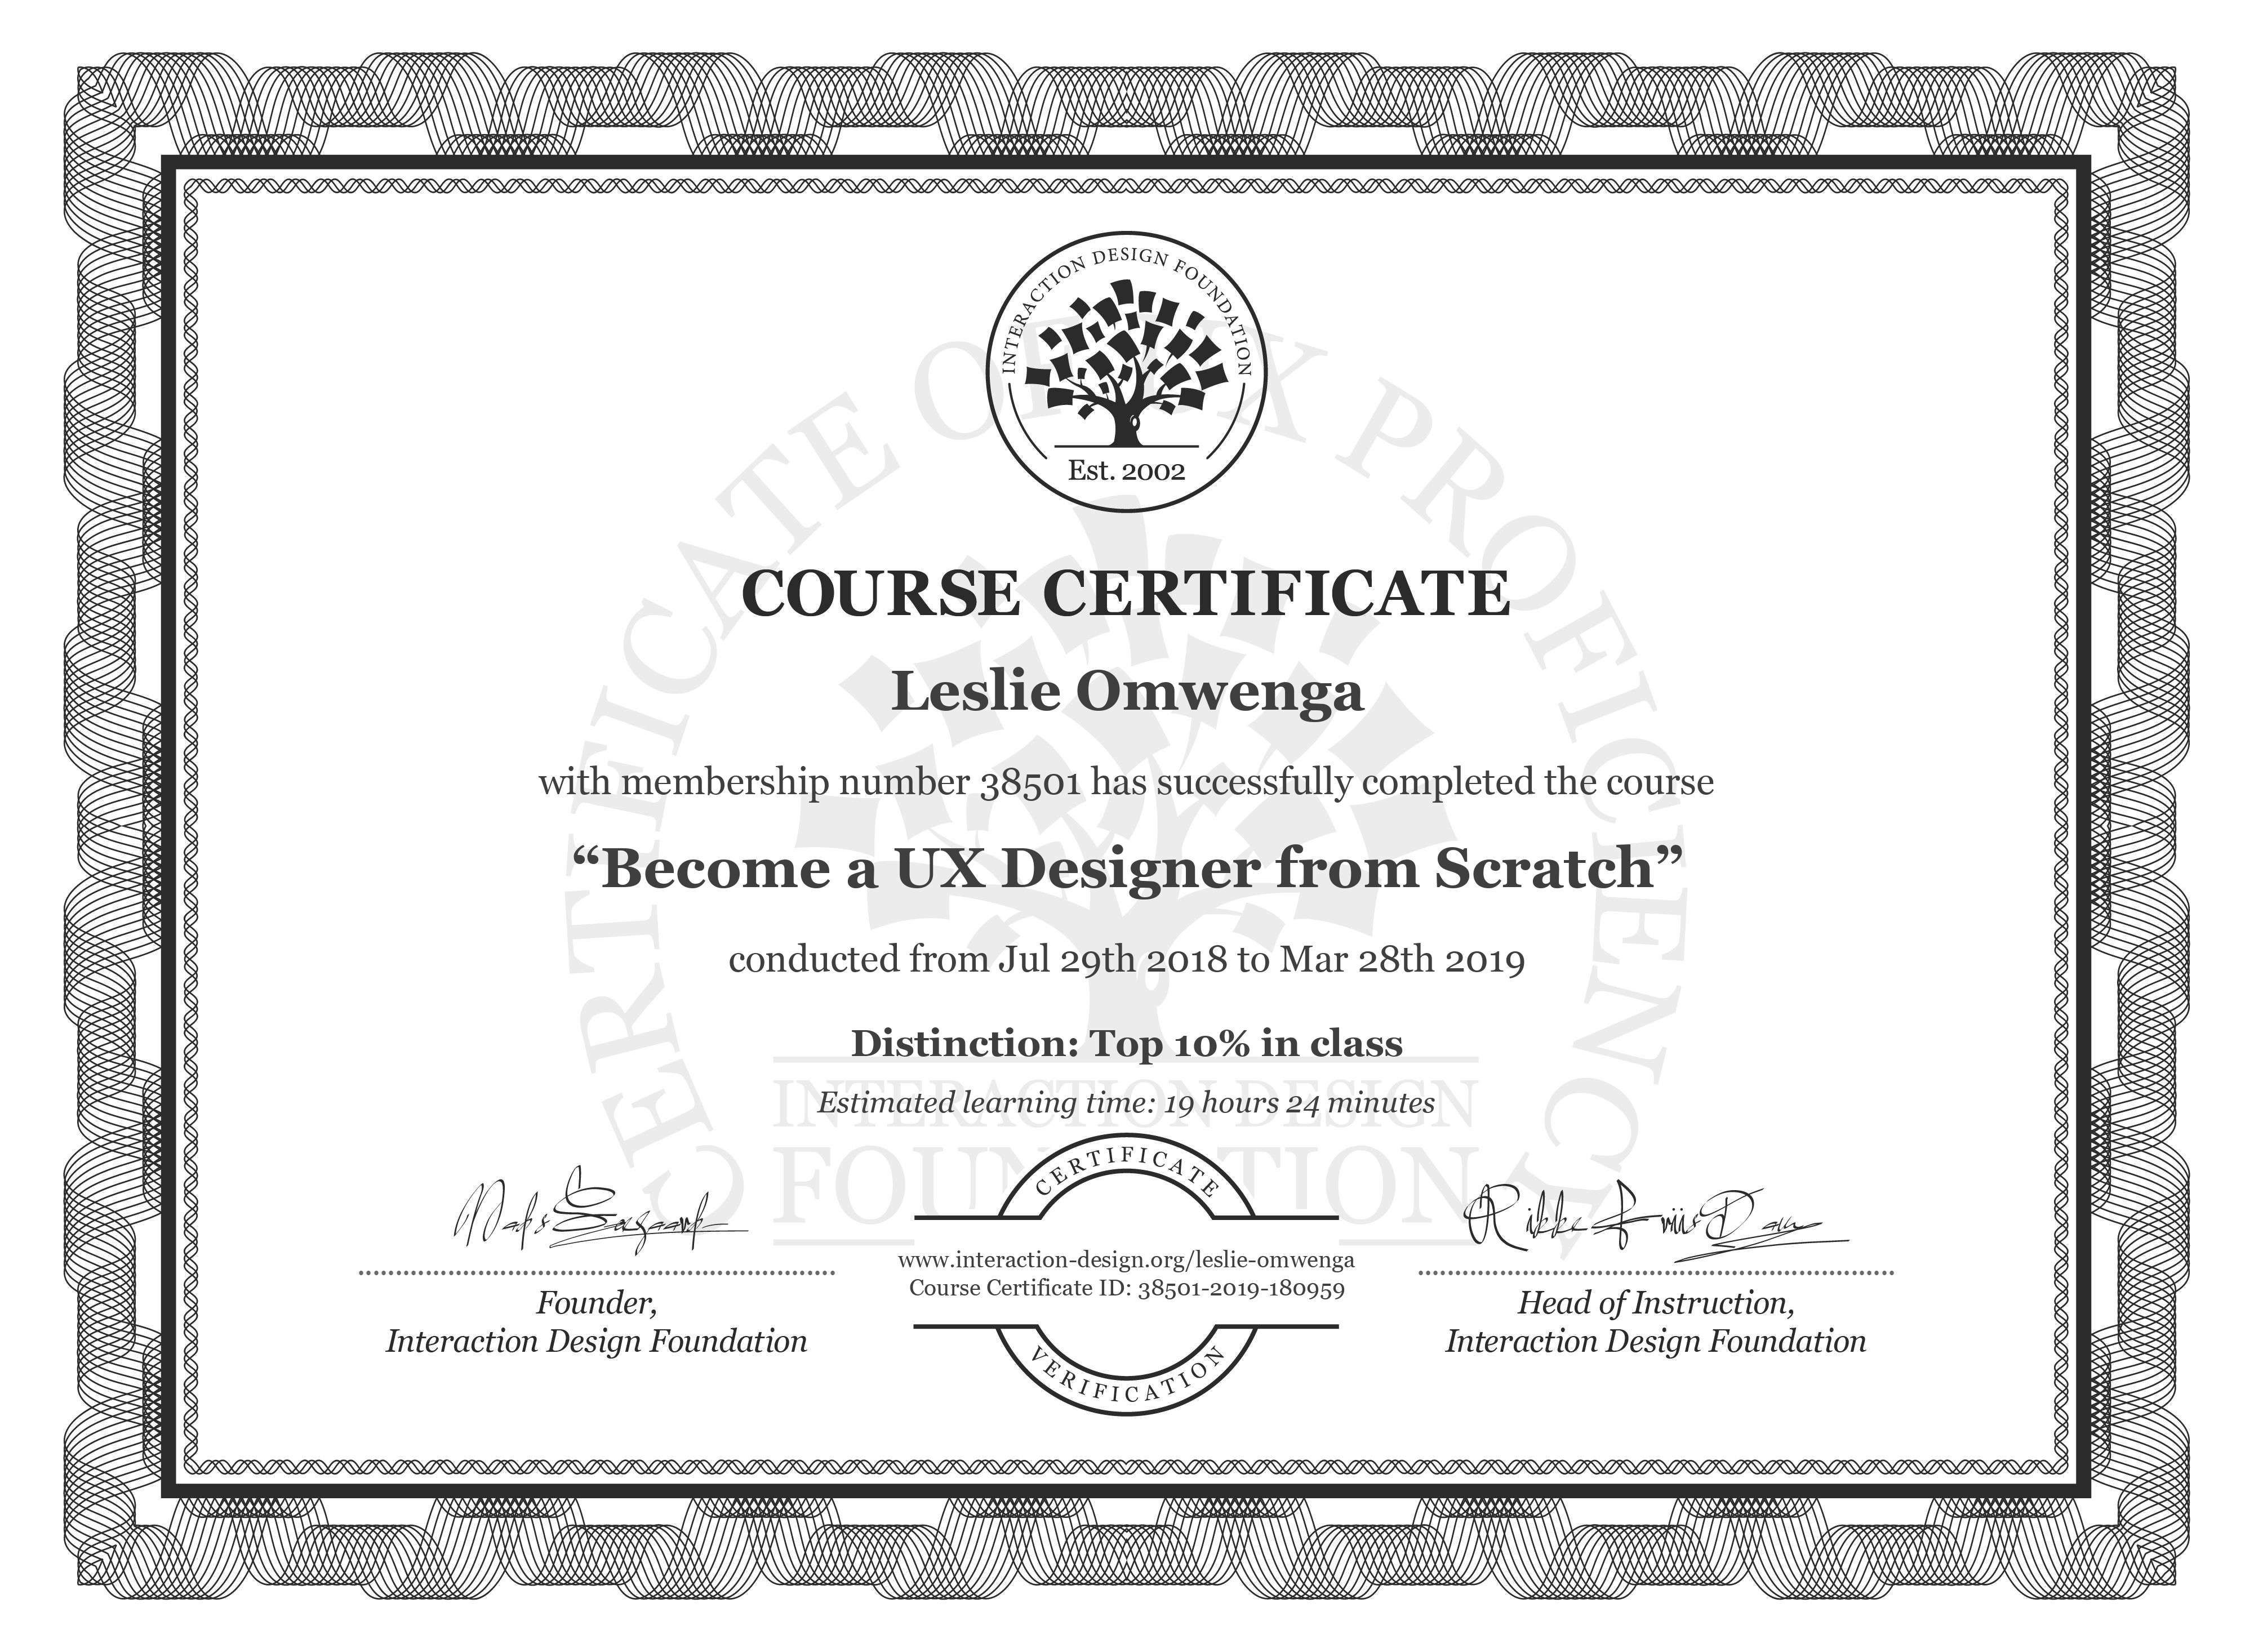 Leslie Omwenga: Course Certificate - User Experience: The Beginner's Guide